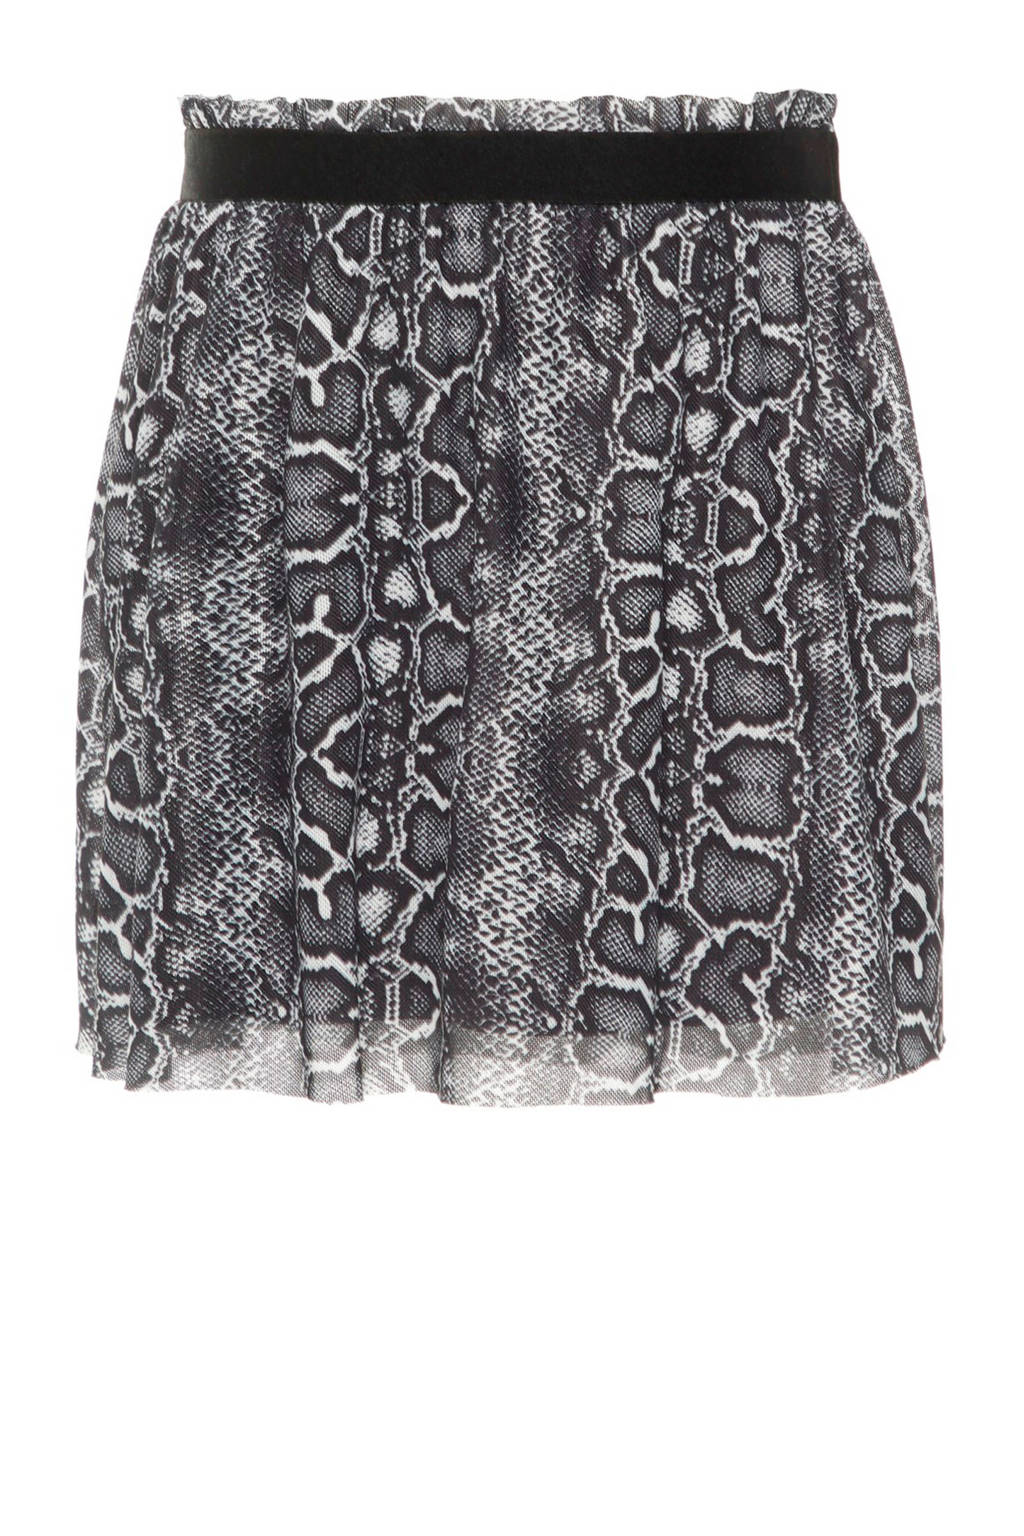 name it MINI rok met slangenprint zwart, 95% polyester/ 5% elastaan